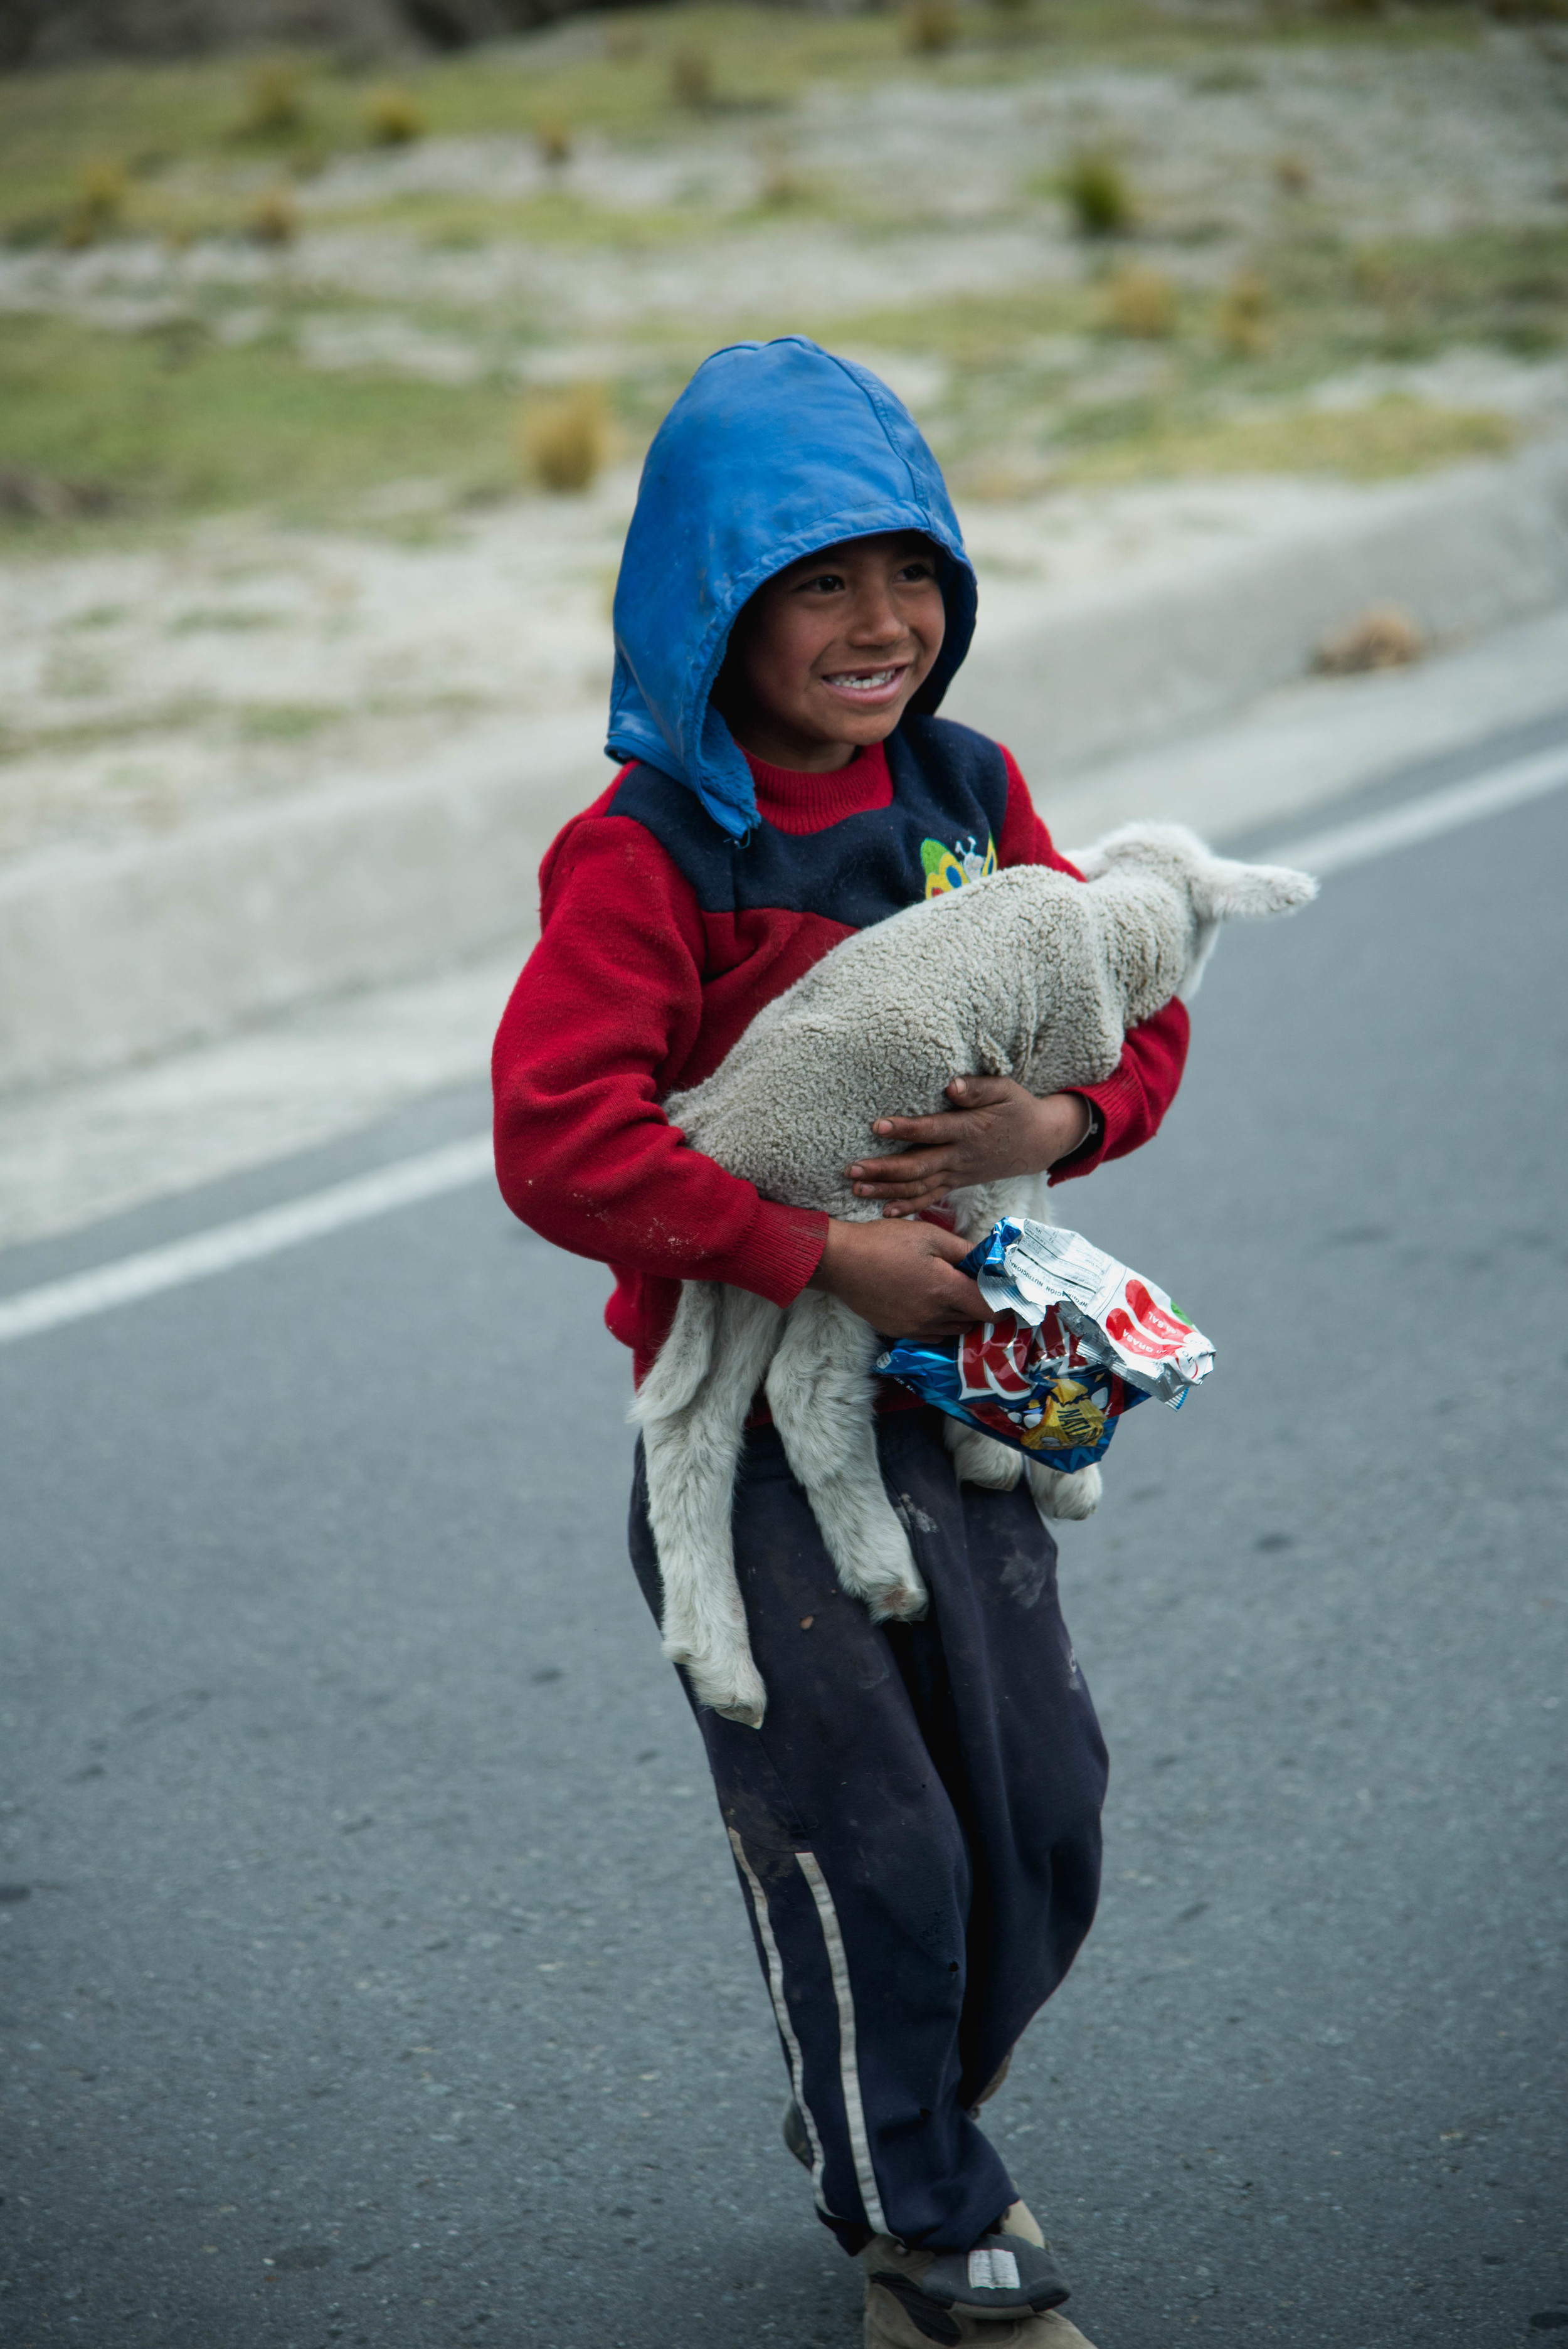 Our driver stopped as we drove past this boy who was sitting on the curb with his newborn lamb. He handed the boy his potato chips and zoomed off while the boy's smile quickly reached from ear to ear.